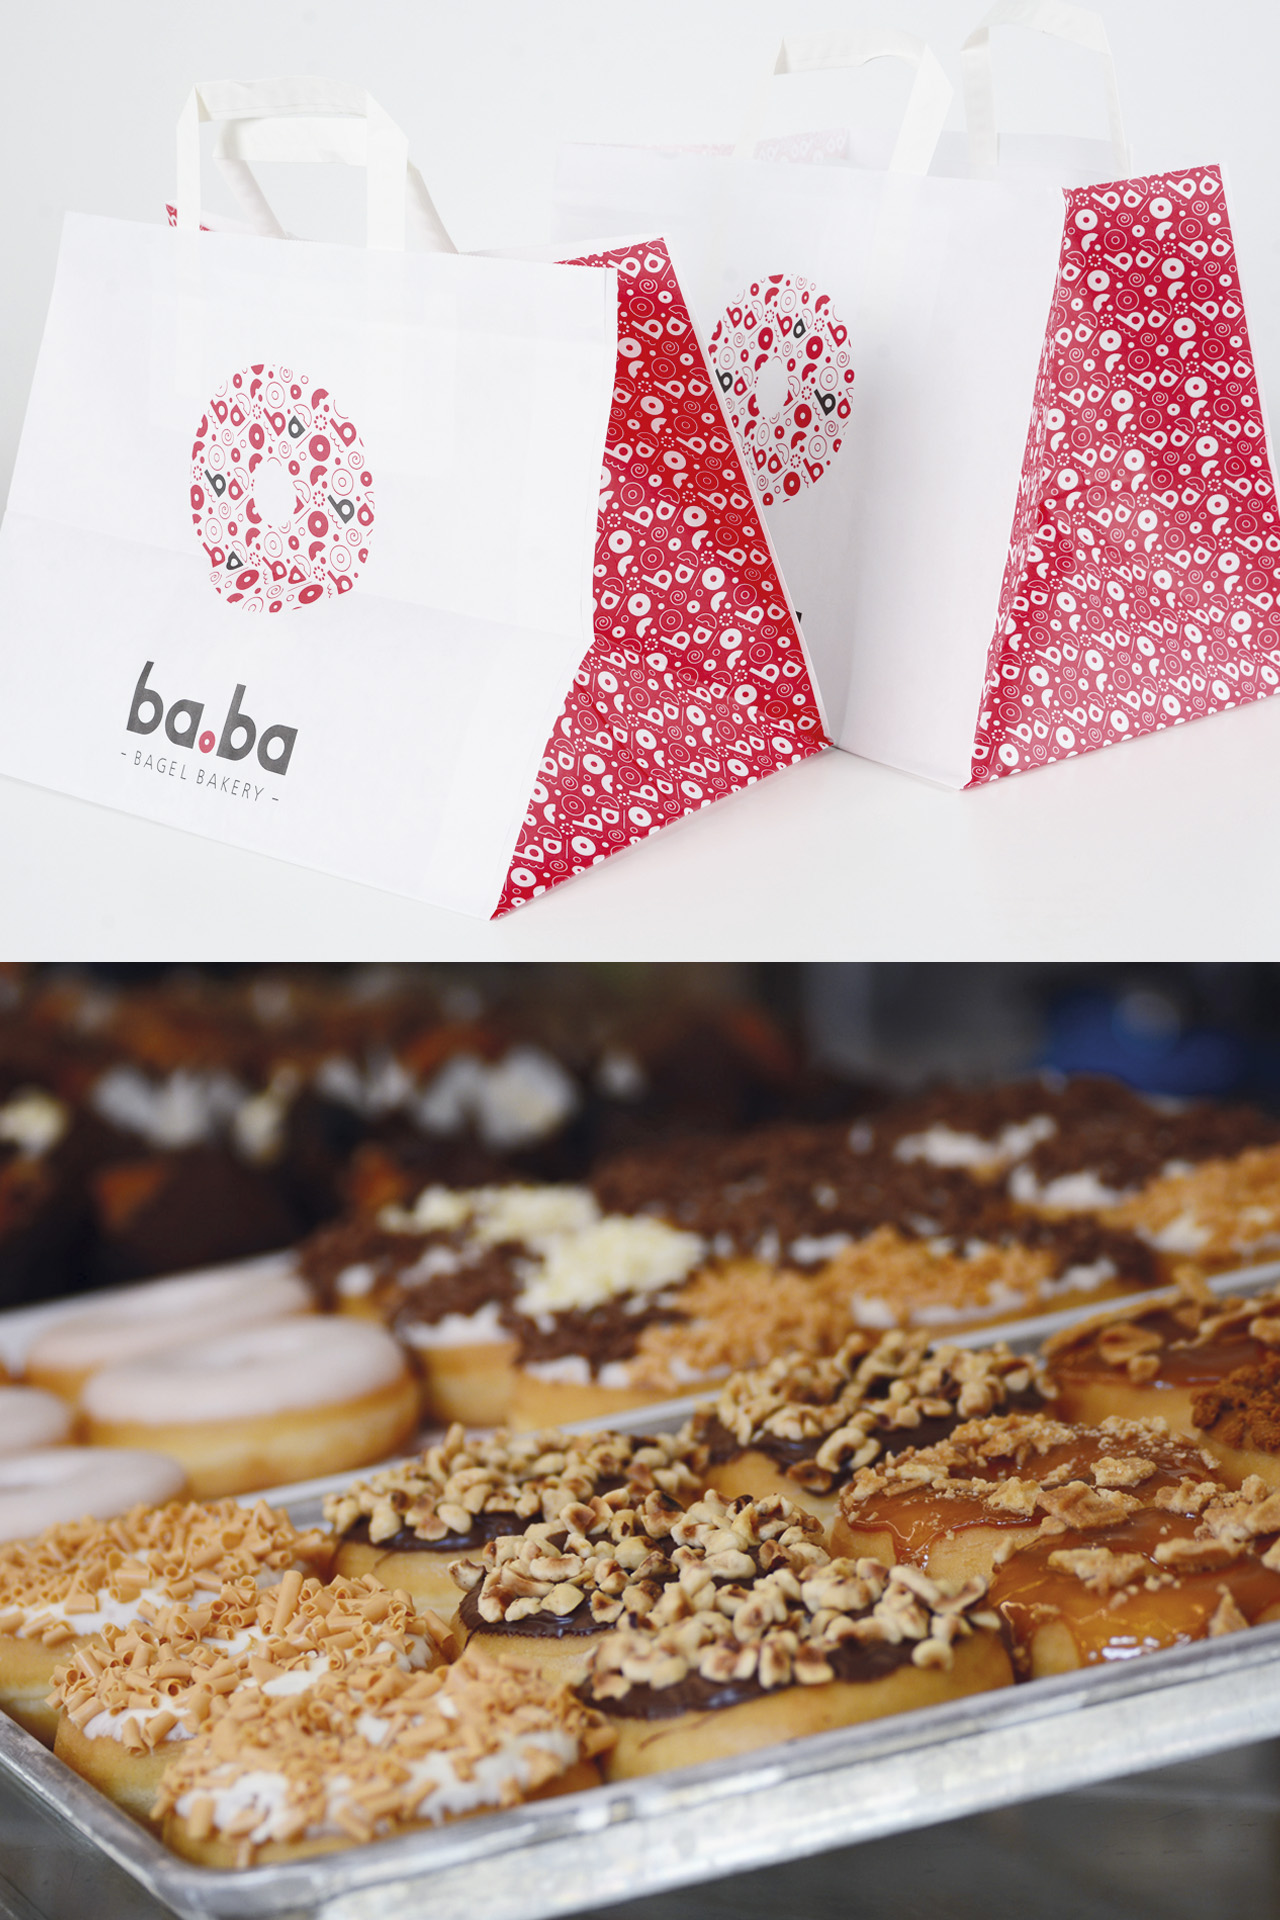 Ba.Ba bagel bakery, branding, graphics design, corporate identity by DesignRepublic branding & packaging design Belgium